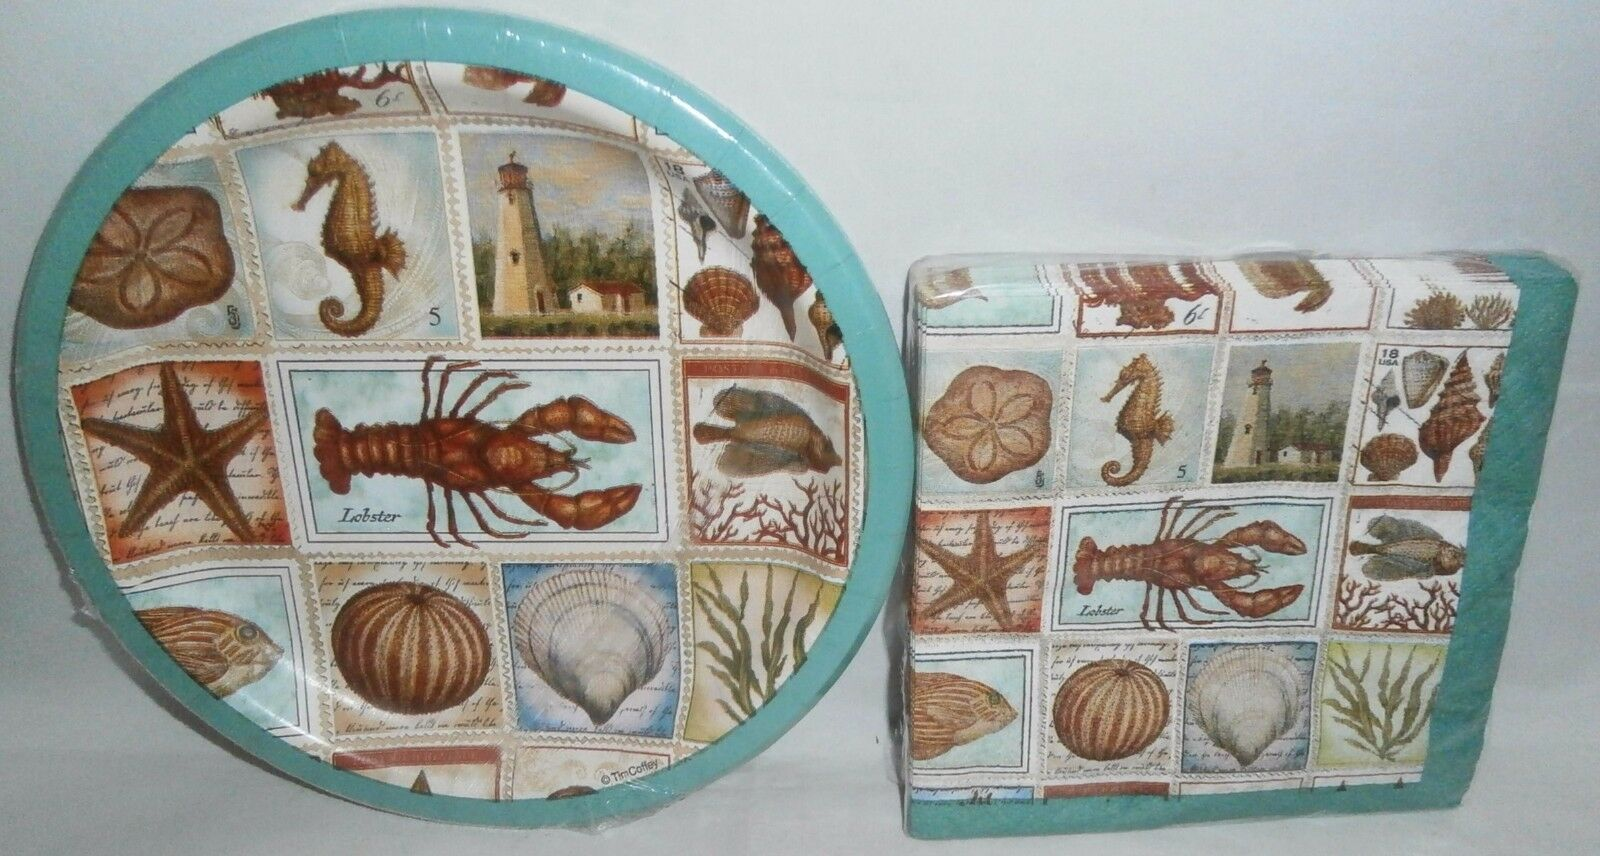 1 of 1Only 1 available ... & COASTAL PAPER PLATES u0026 Cocktail Napkins SEASHORE COLLAGE - $7.50 ...